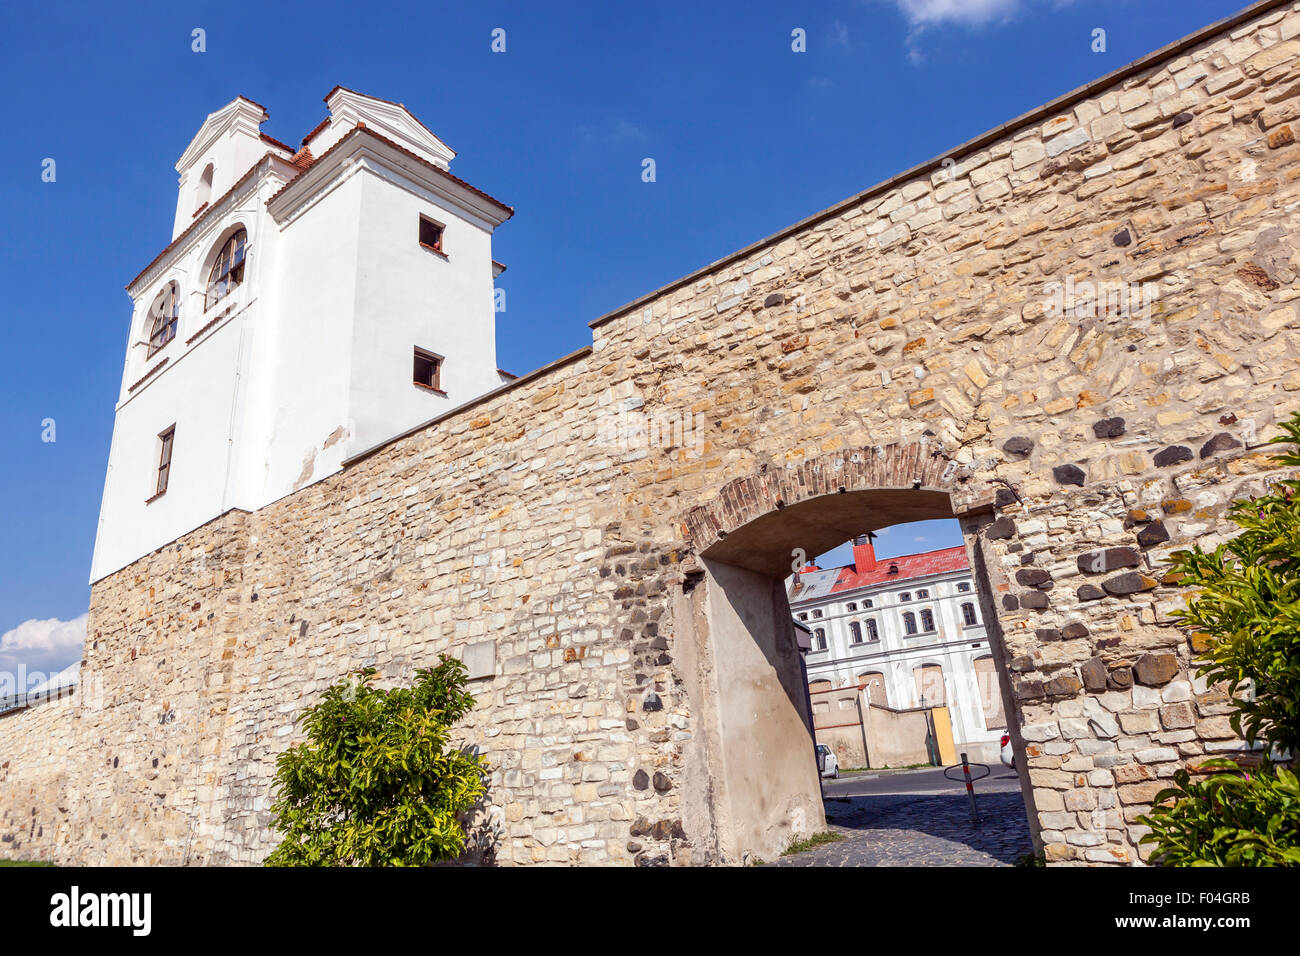 Jesuit Observatory, part of the fortifications, Litomerice, Northern Bohemia, Czech Republic - Stock Image